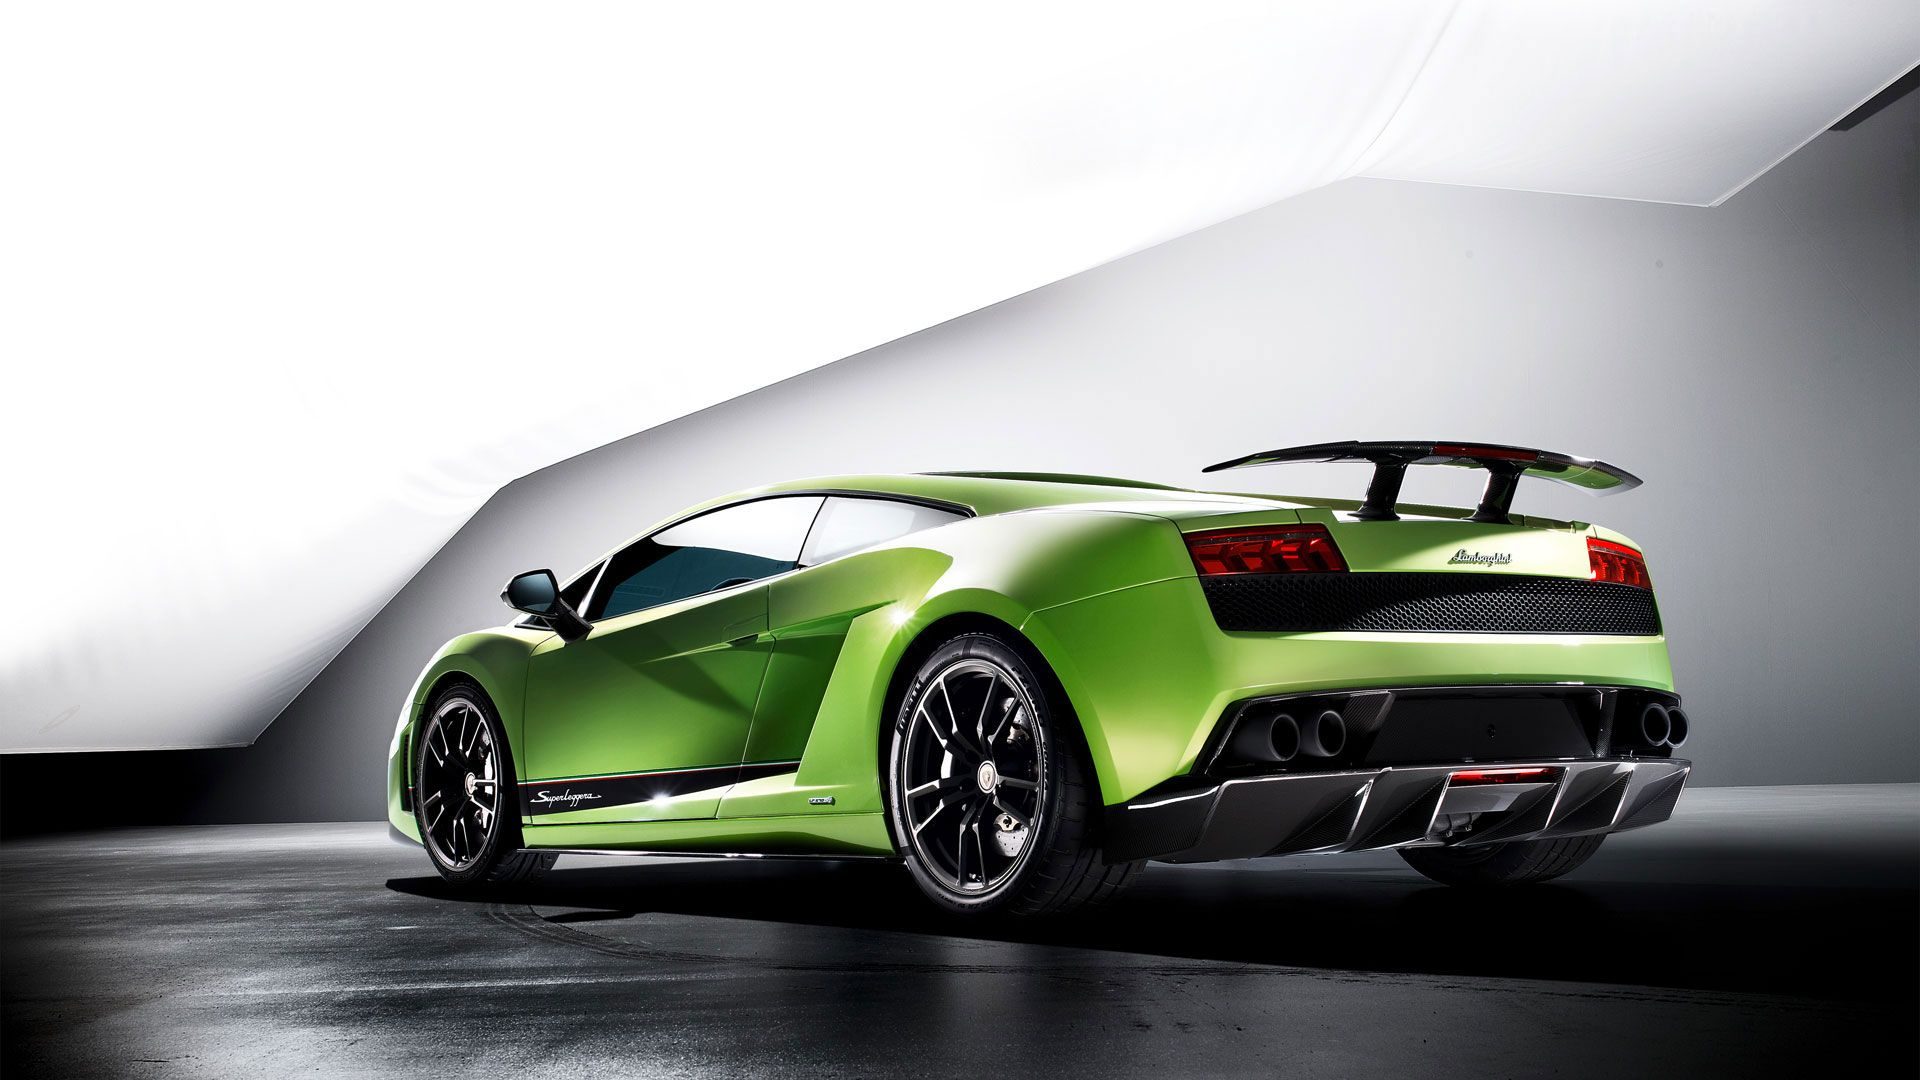 Wallpaper Area Green Lamborghini Gallardo Wallpaper Hd